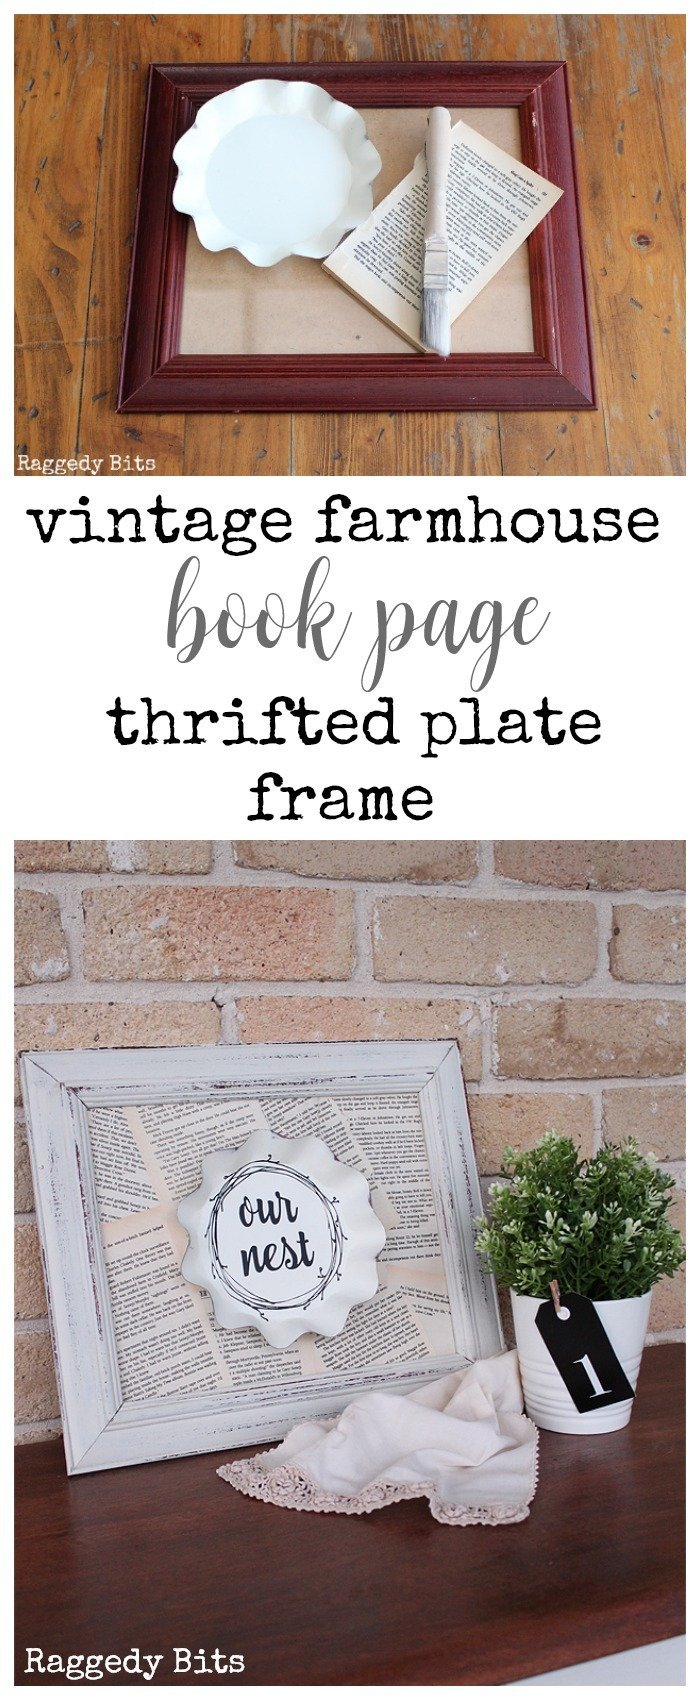 Using a thrifted plate, book pages and a frame see how I made a fun Vintage Farmhouse Book Page Thrifted Plate Frame | www.raggedy-bits.com | #bookpage #frame #vintage #farmhouse #raggedybits #fusionmineralpaint #champlain #DIY #old